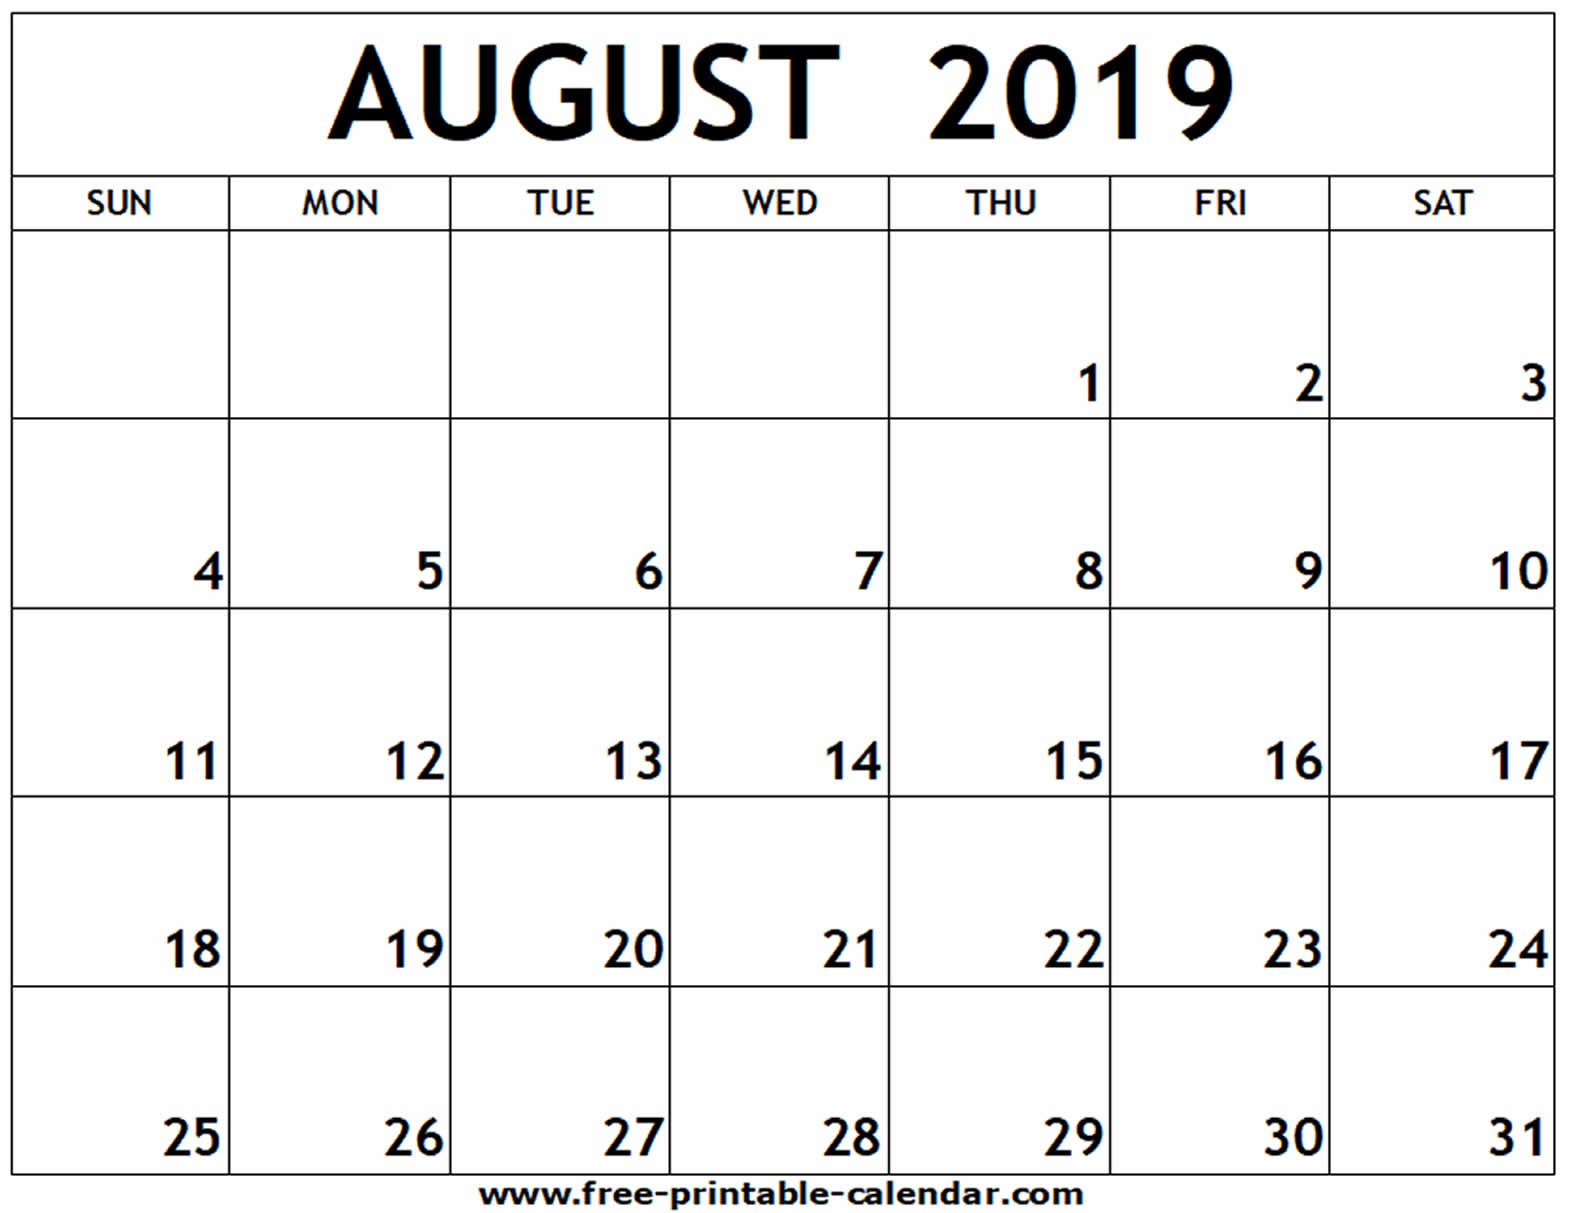 August 2019 Printable Calendar - Free-Printable-Calendar intended for Blank Calendar Of August Full Page